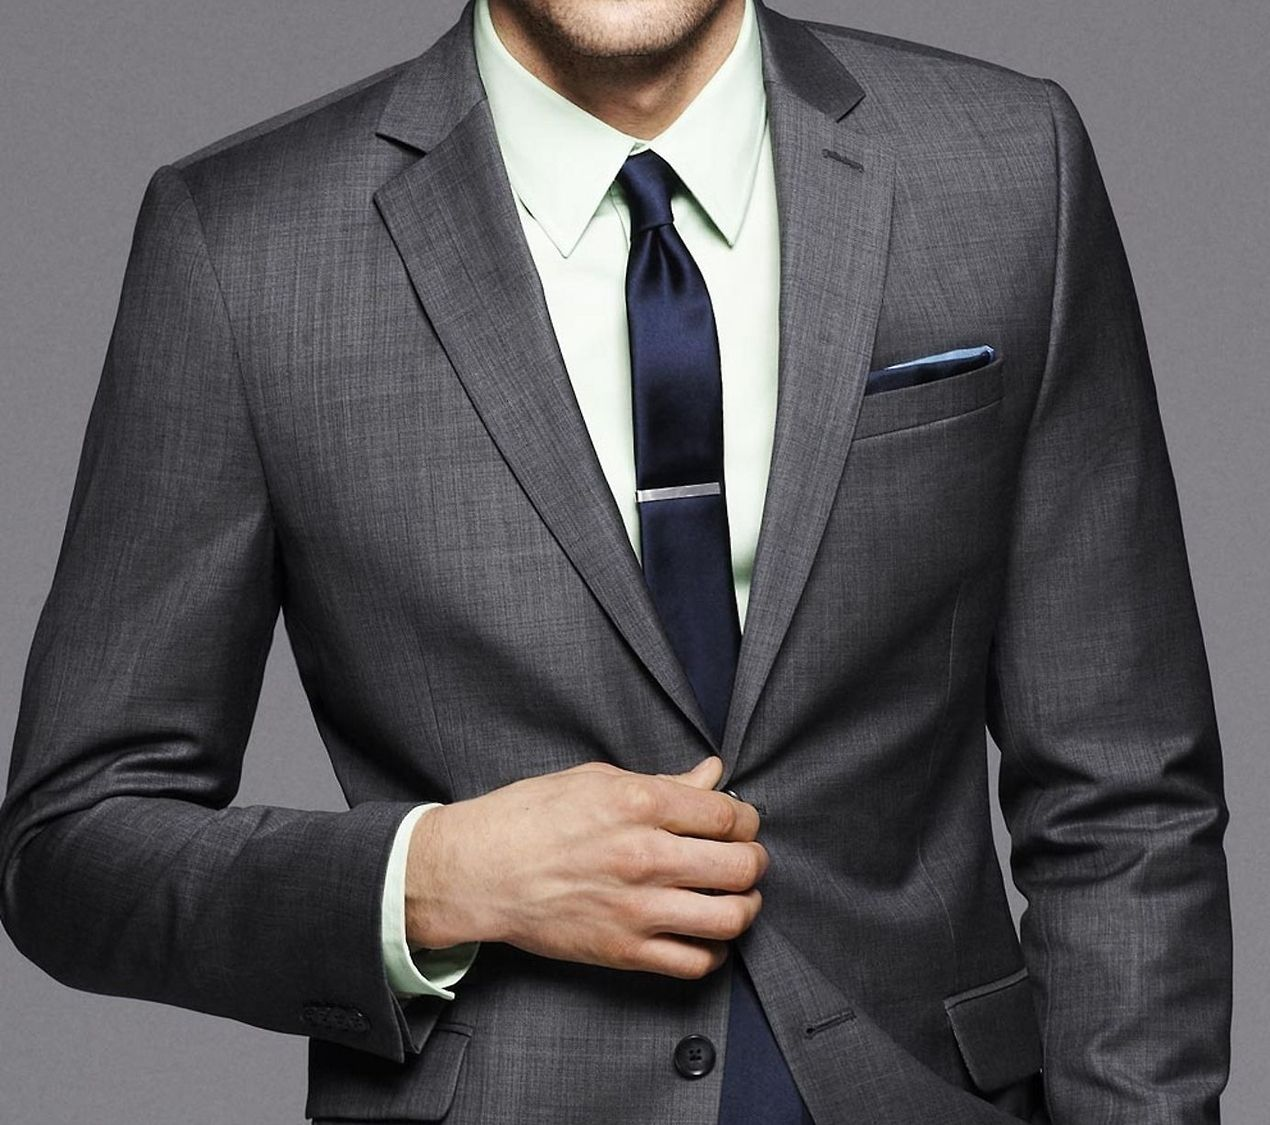 A dark grey suit | gentleman style | Pinterest | Suits, Colour and ...